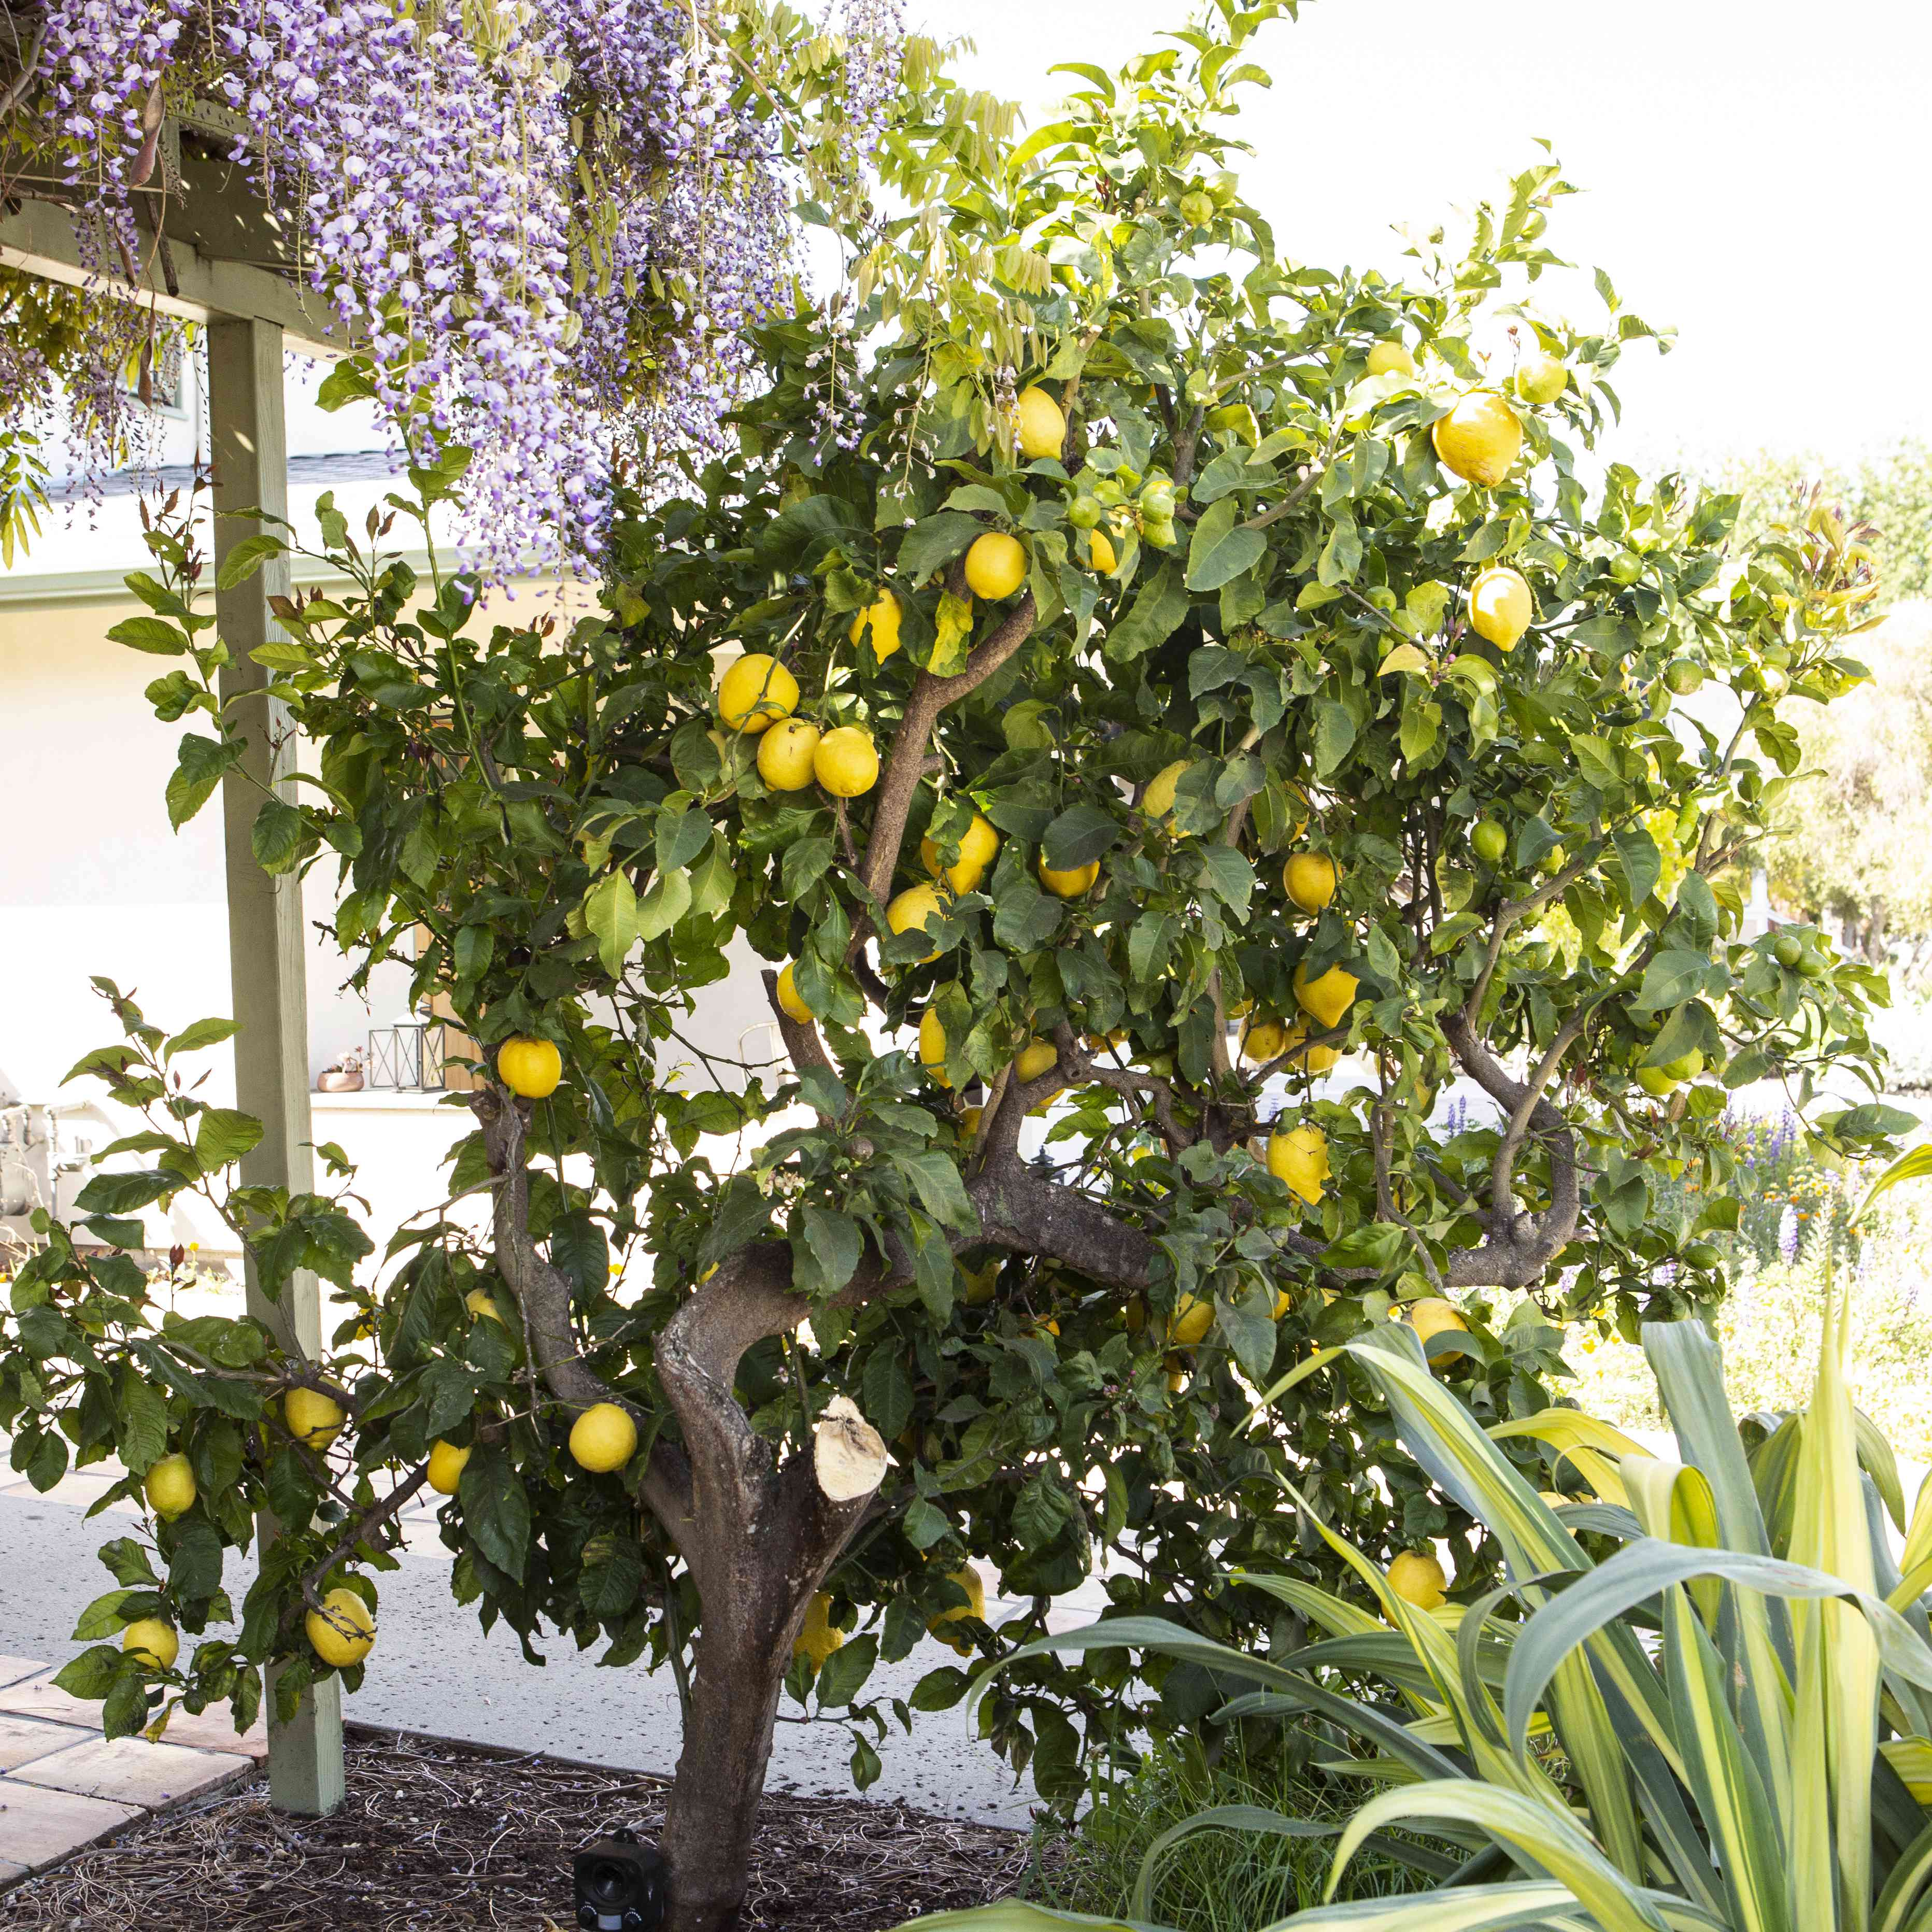 Lemon tree with yellow lemons and winding trunk in between green foliage and awning with purple flowers on top